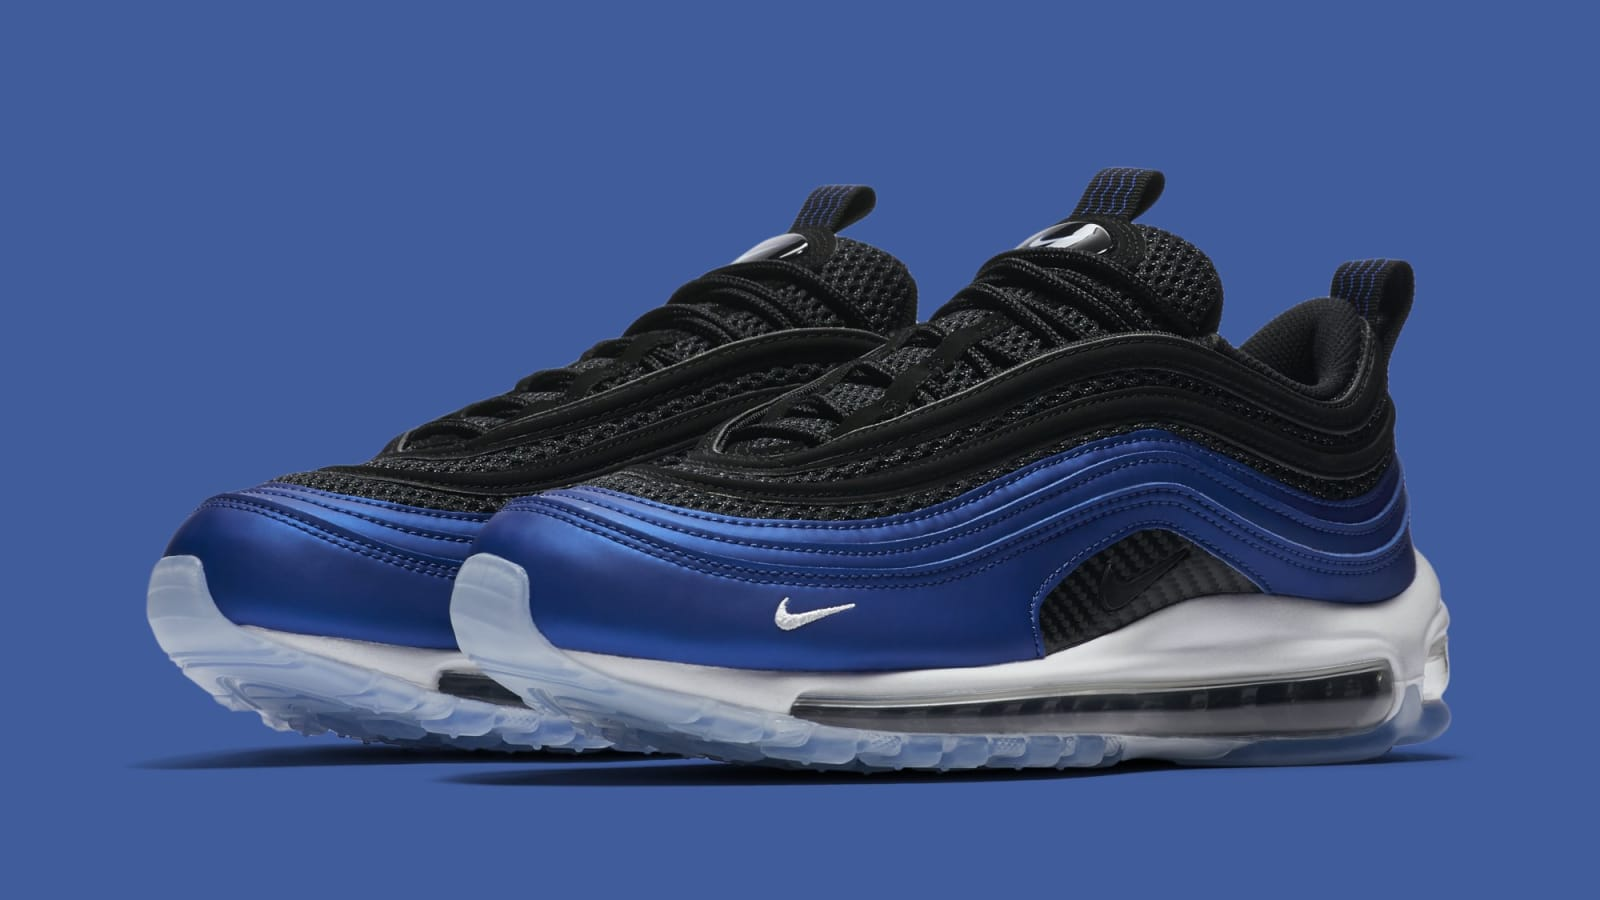 381b2e1306 Nike Air Max 97 Inspired By The Foamposite Coming Soon: Official ...